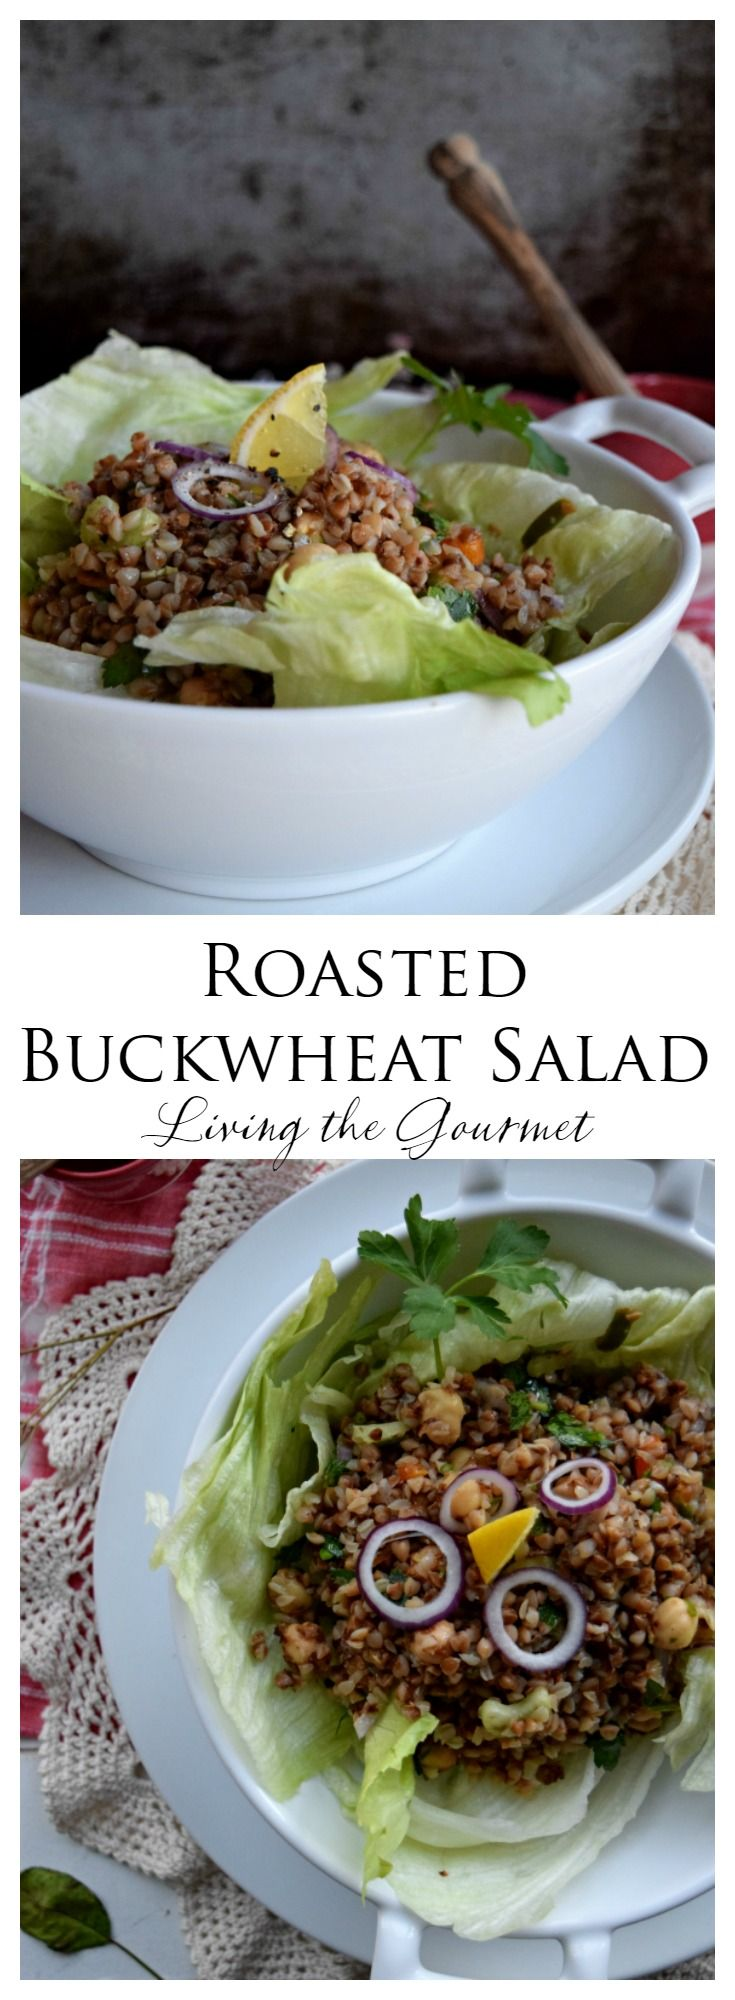 Roasted Buckwheat groats are tossed together chickpeas, jalapenos and a zesty lemon dressing for a light and refreshing feel-good meal. I spoke recently about my attempts at healthier snacking, and my struggle to stay fit despite my sedentary attachment to my desk and the decadent-yet-unavoidable temptations my test kitchen. Though in the words of Puzo...